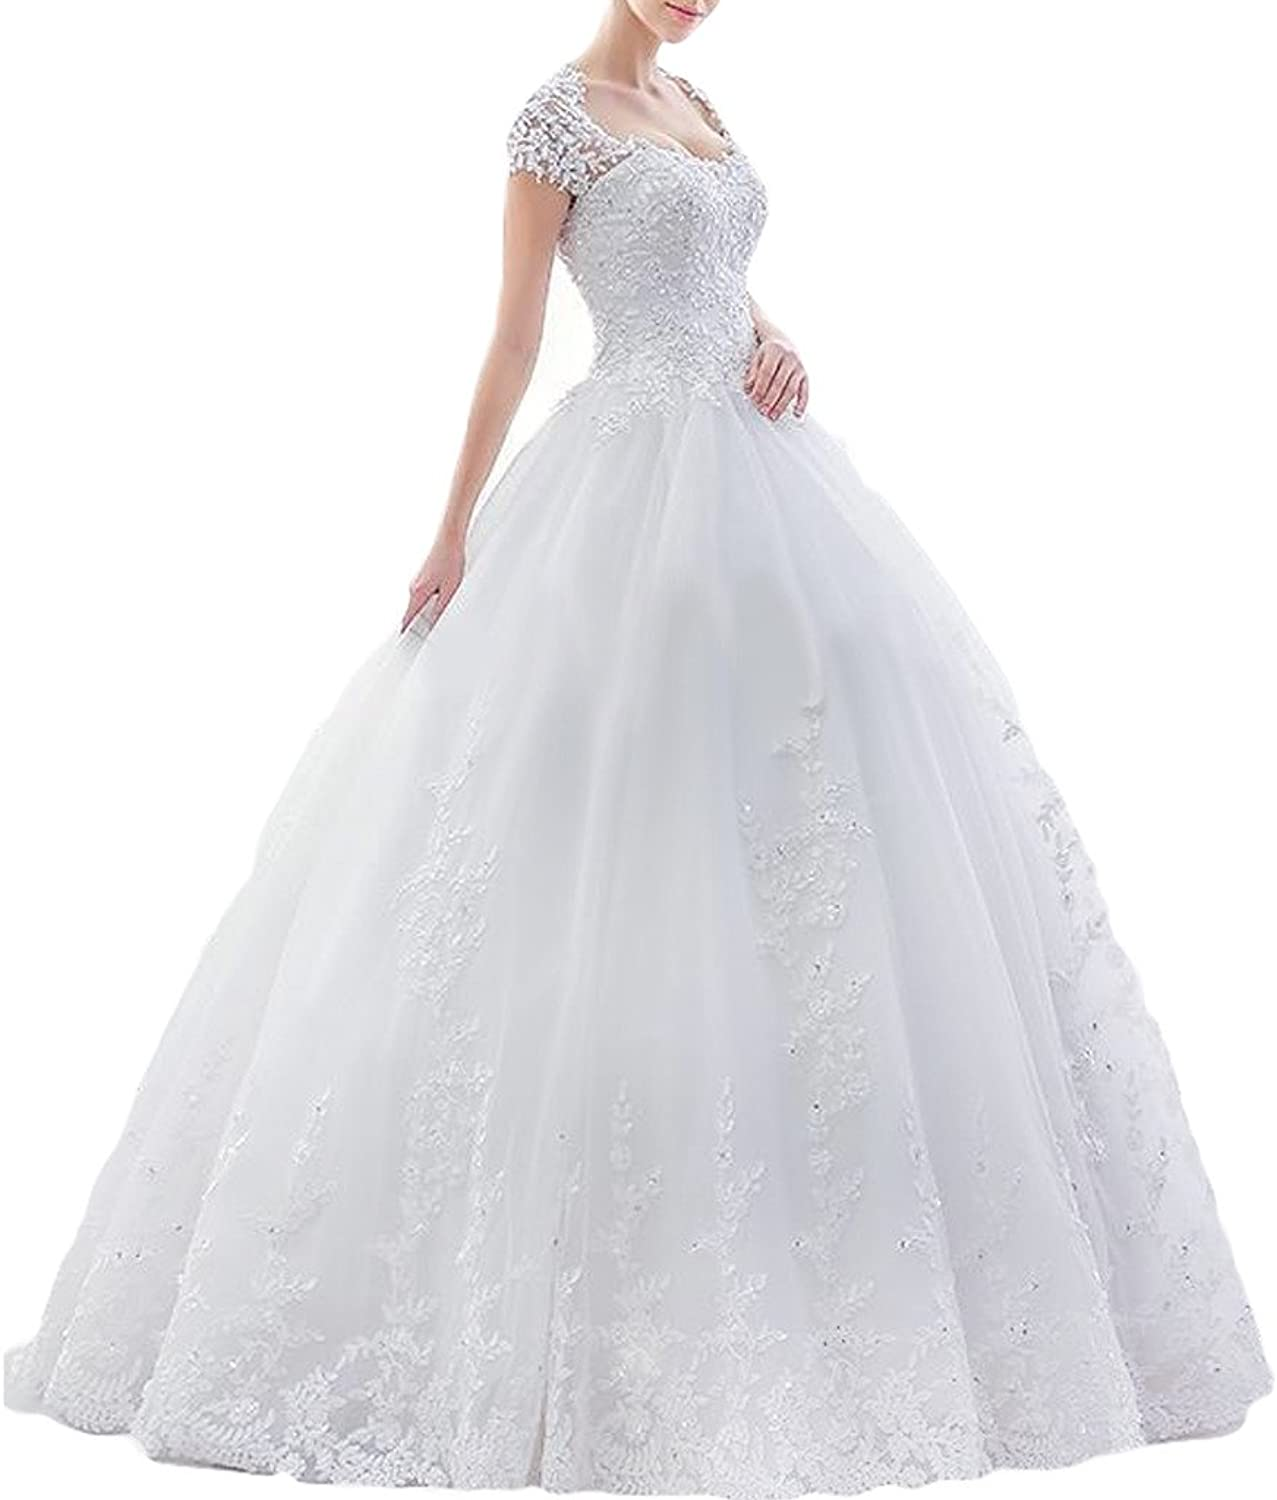 MILANO BRIDE Classic Wedding Dress For Bride Ball Gown Cap Sleeves Floral Applique